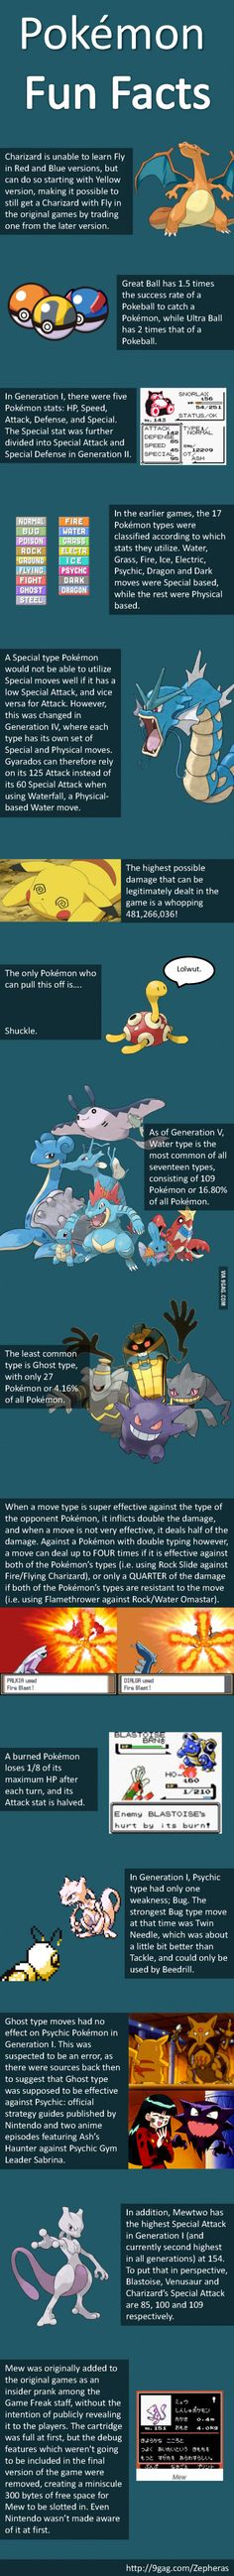 Pokemon Fun Facts